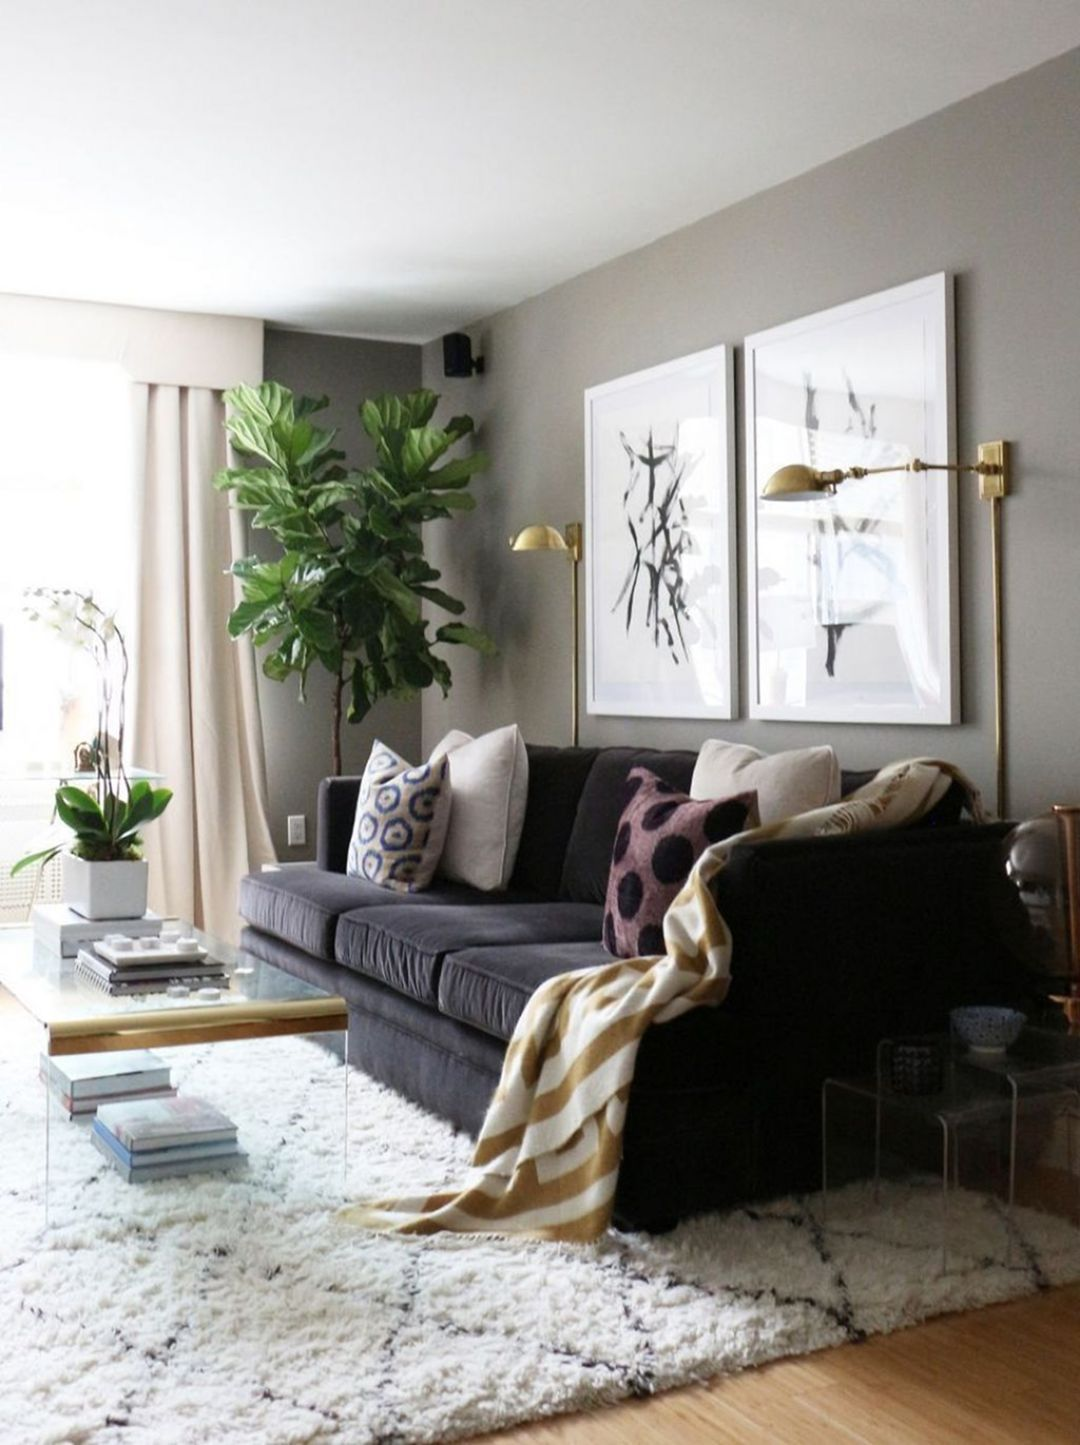 Small Modern Apartment Living Room Ideas: 30 Cozy Industrial Living Room Design Ideas That Will